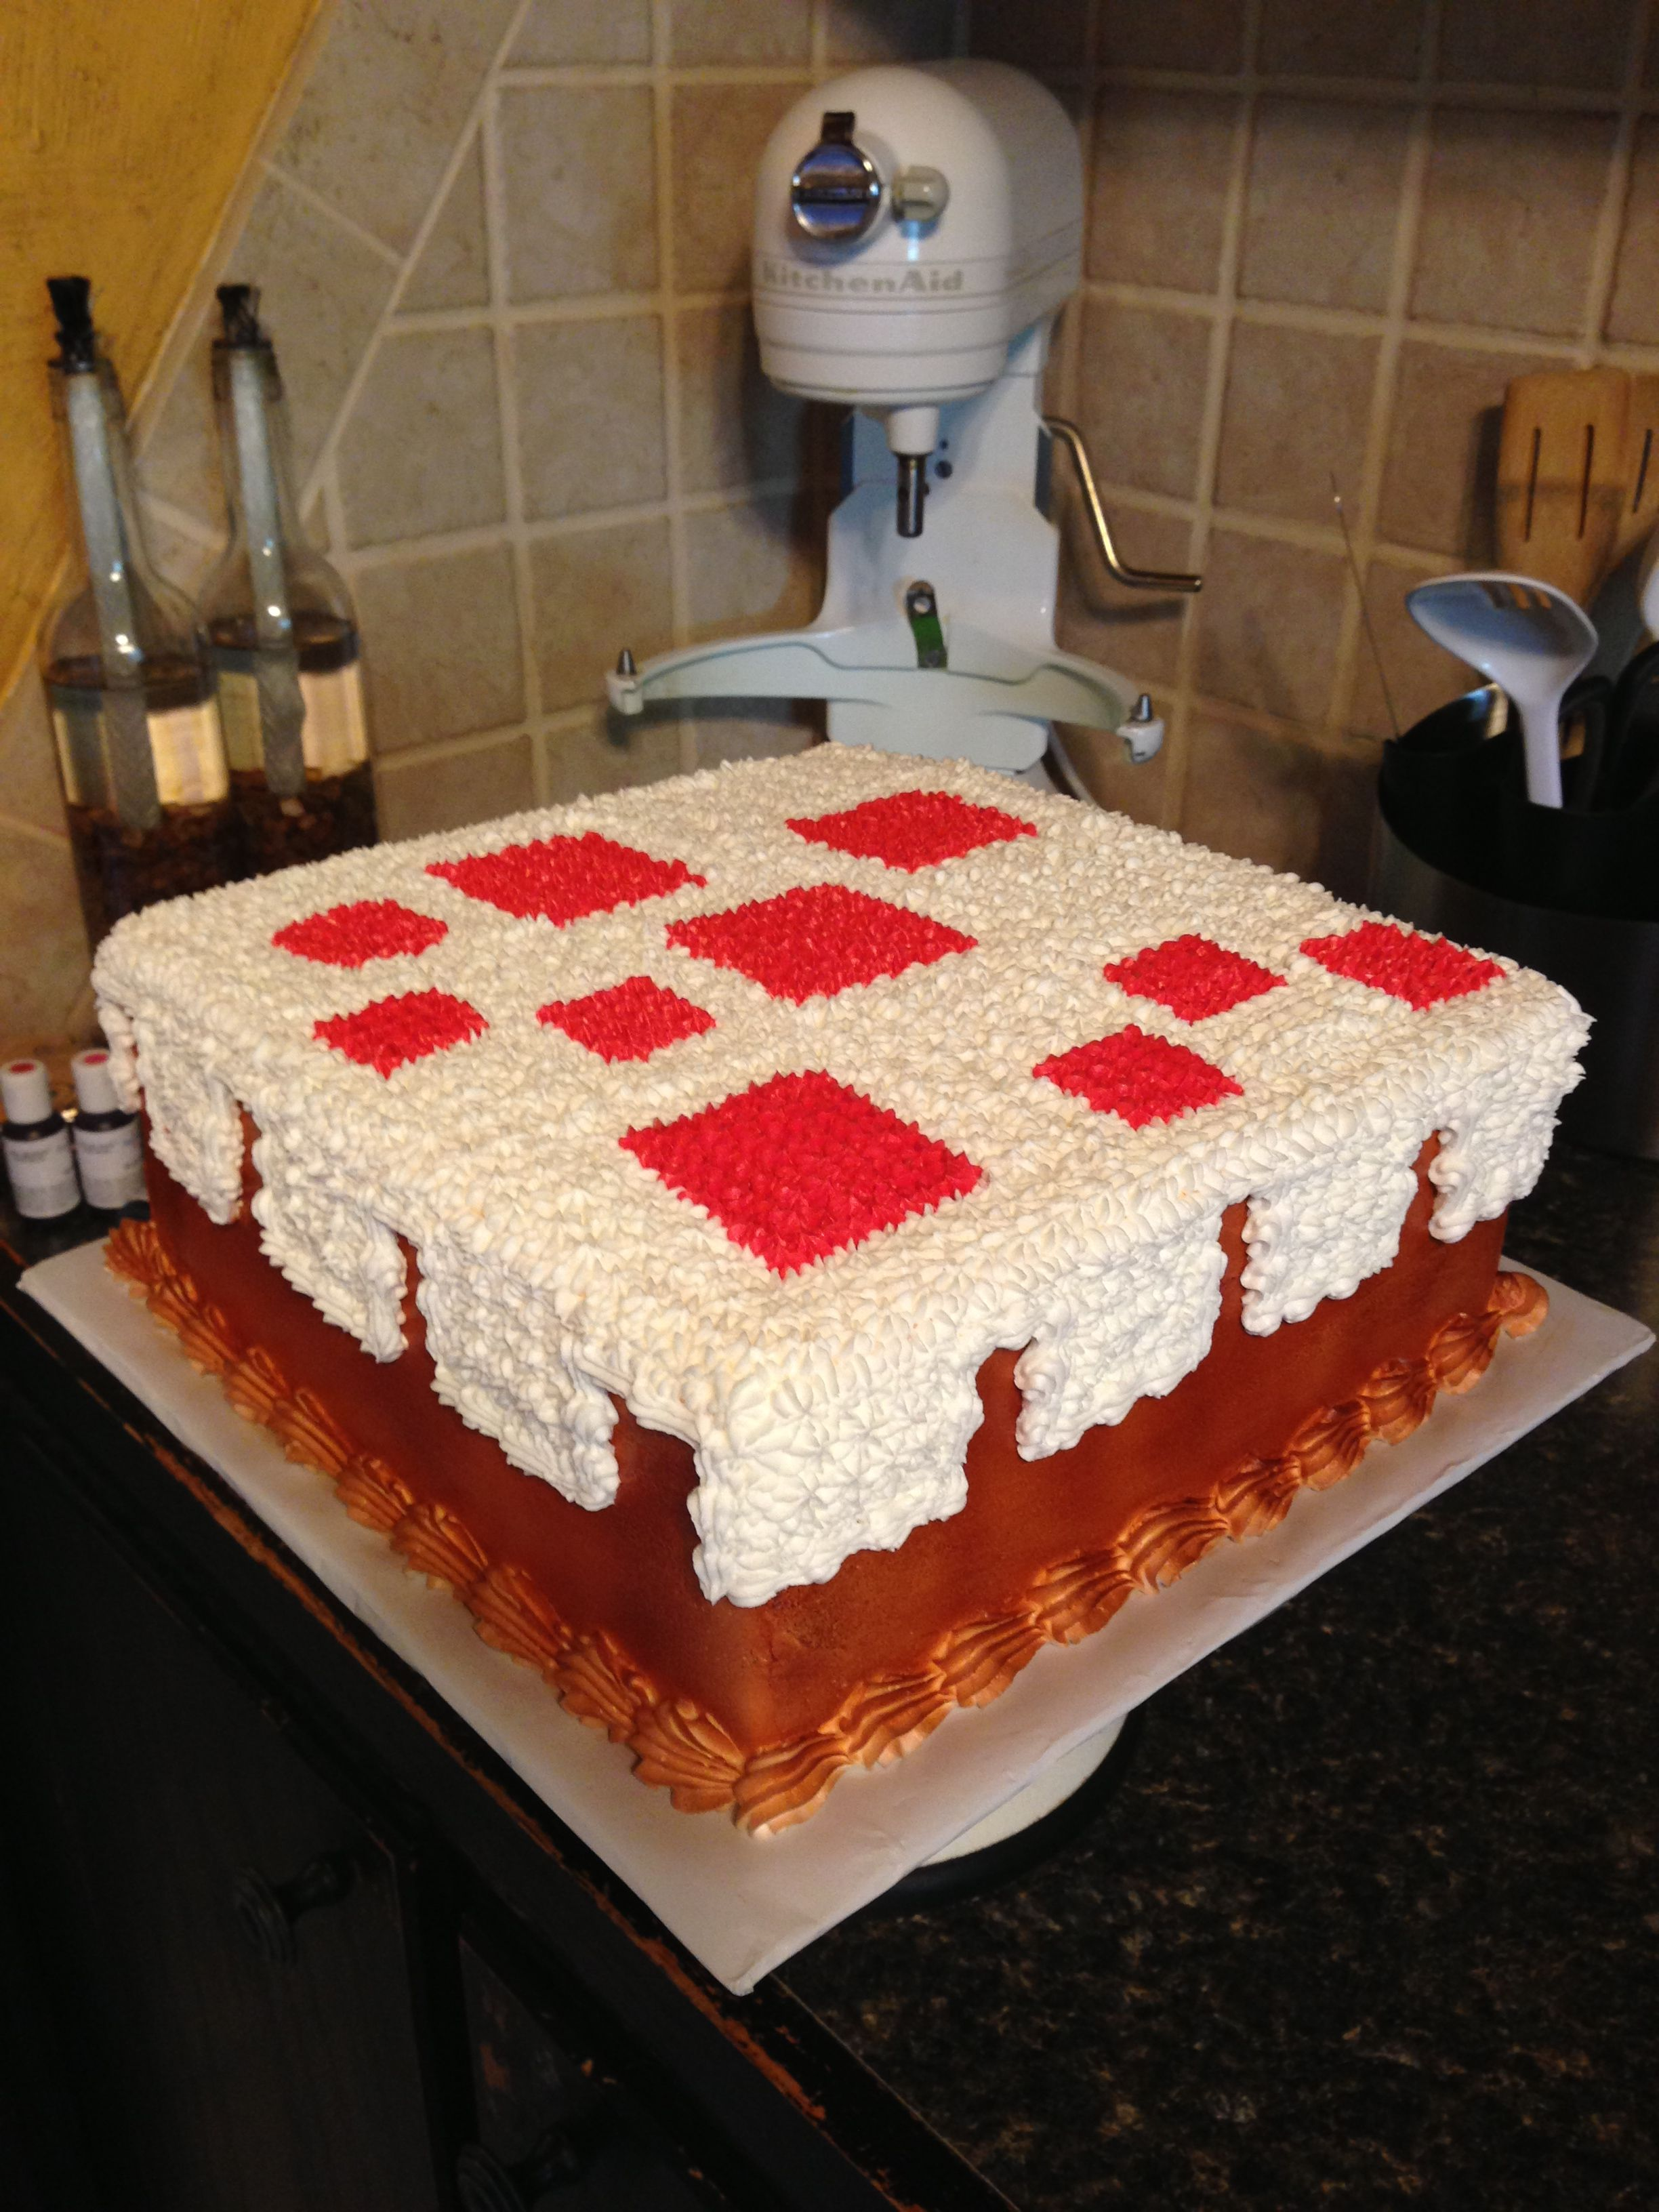 Minecraft Cake From The Game Marble Cake With